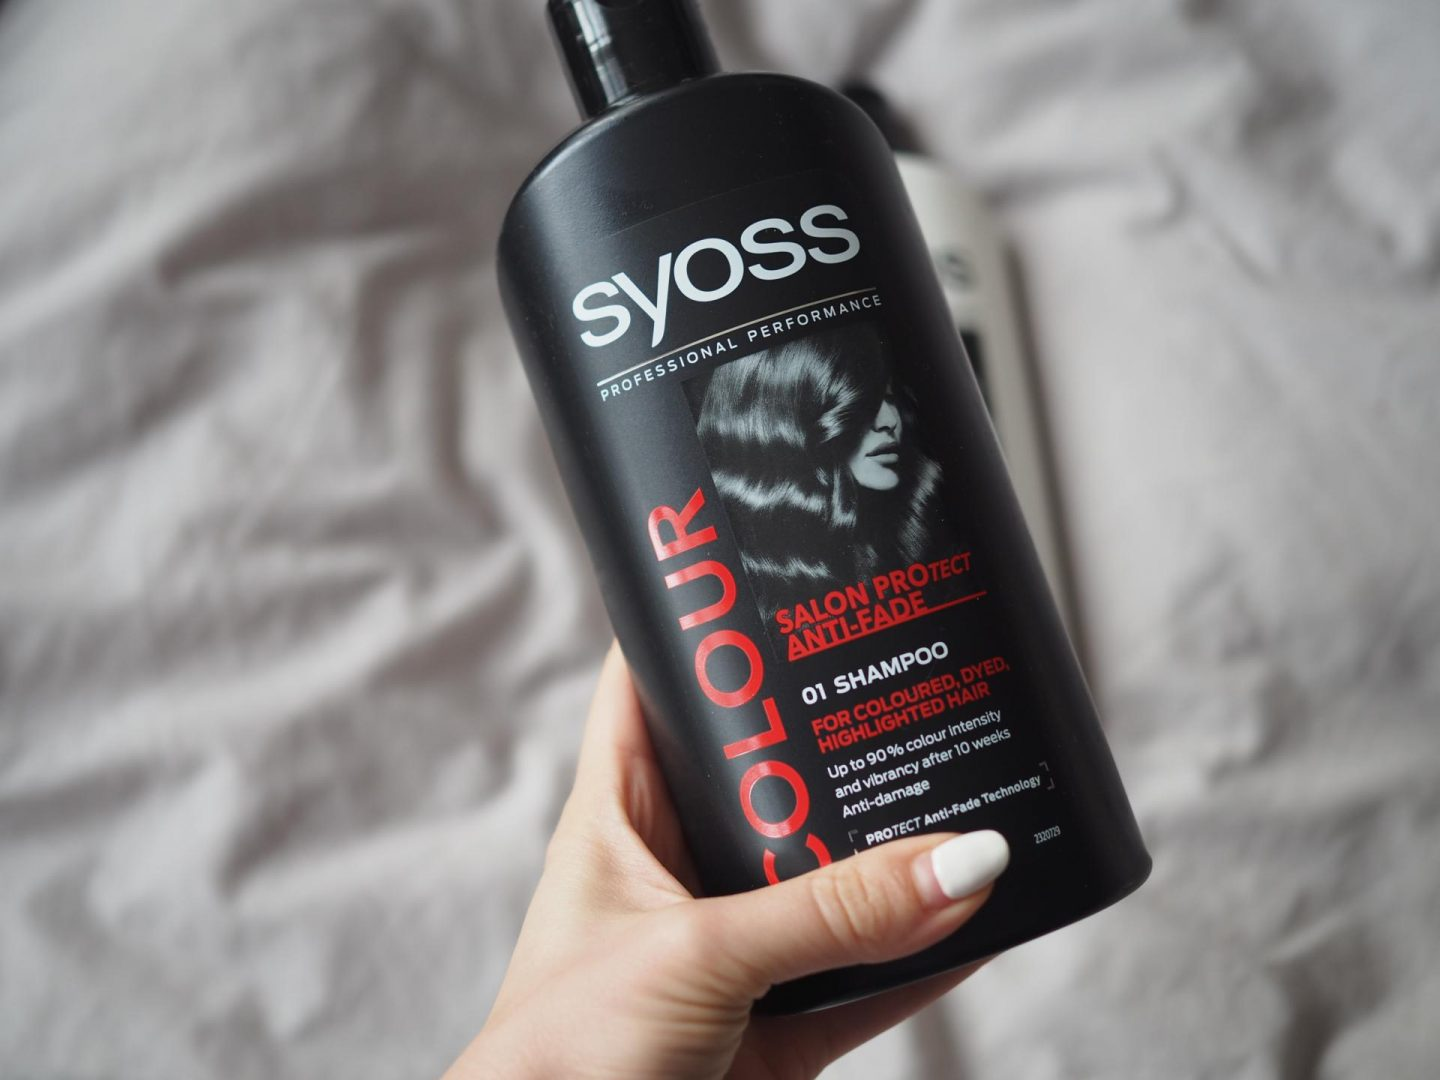 Syoss Salon Protect Anti-Fade Shampoo and Conditioner